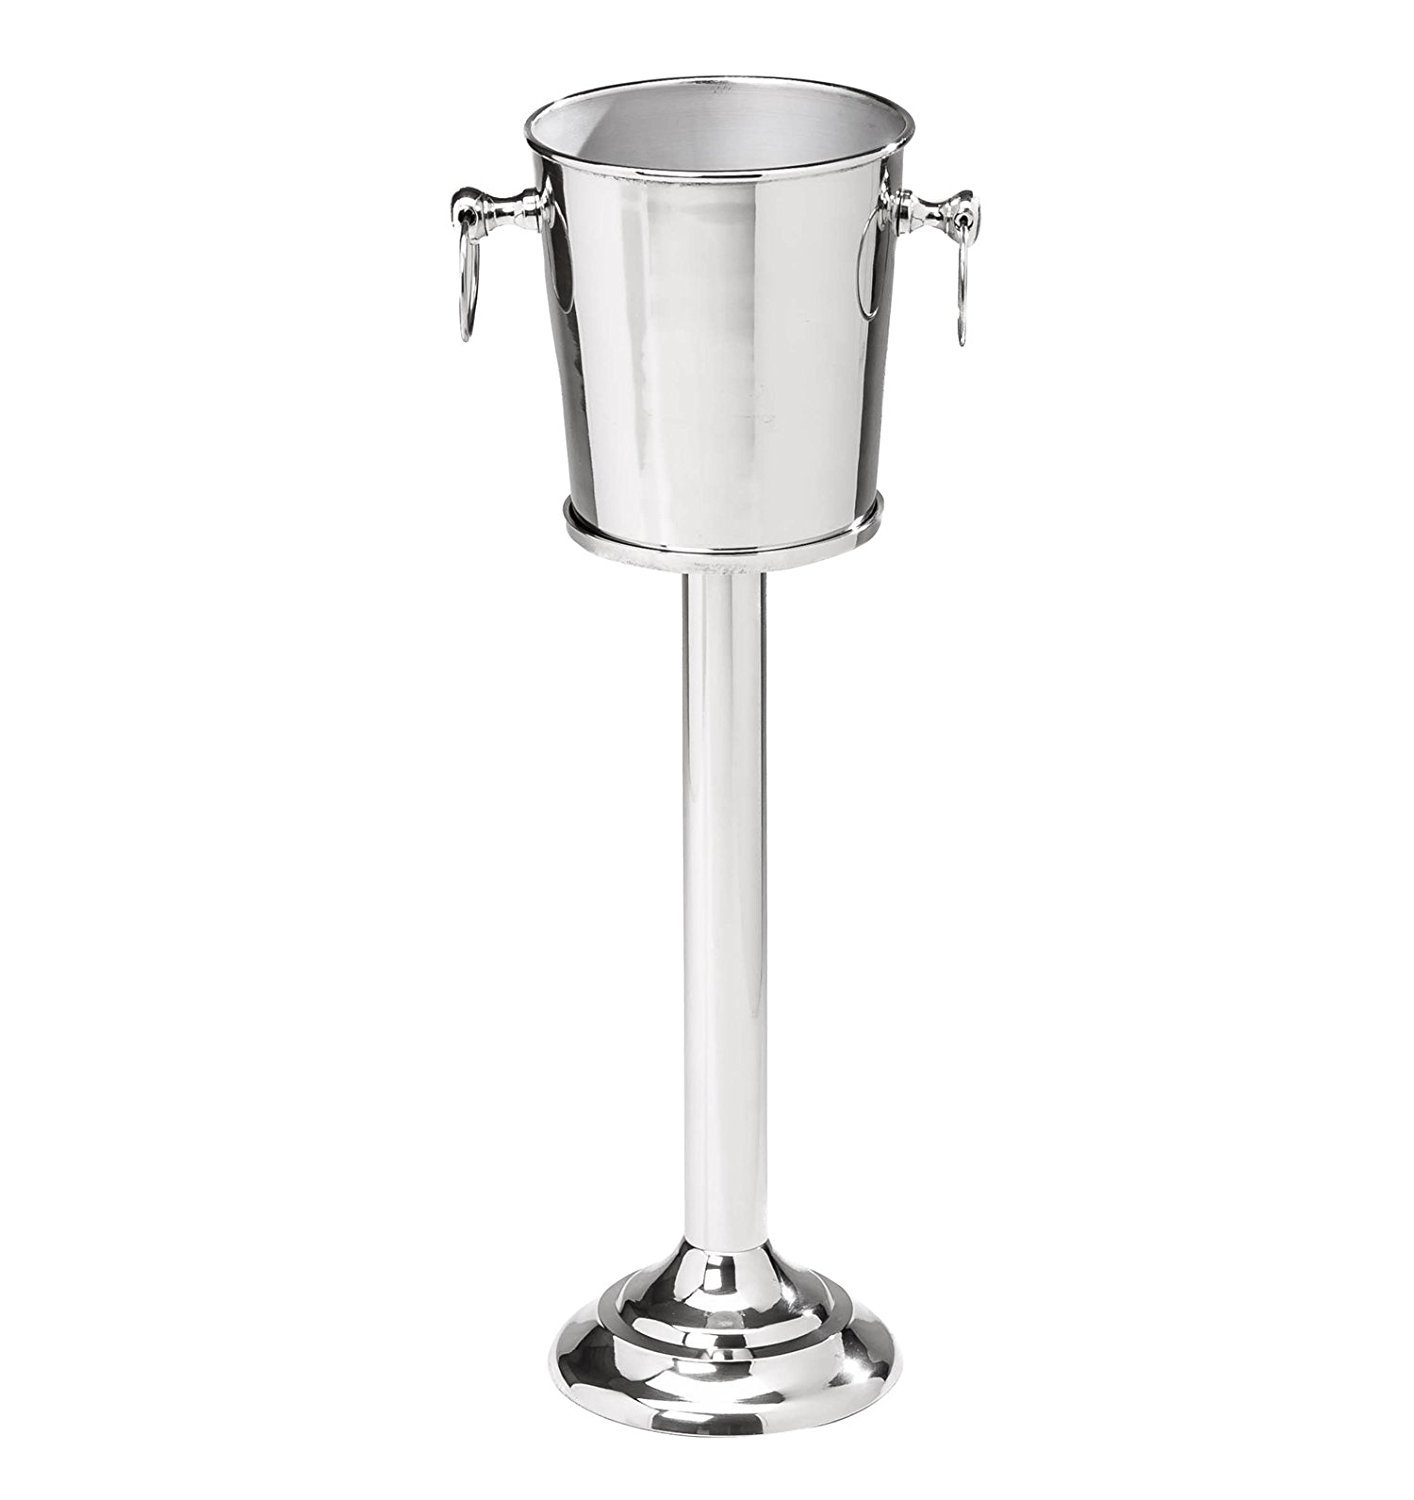 Nickel Plated Premium Aluminum Free Standing Wine Chiller | Wine Coolers & Cellar With Ice Bucket | Kitchen & Bar Wares | Nagina International